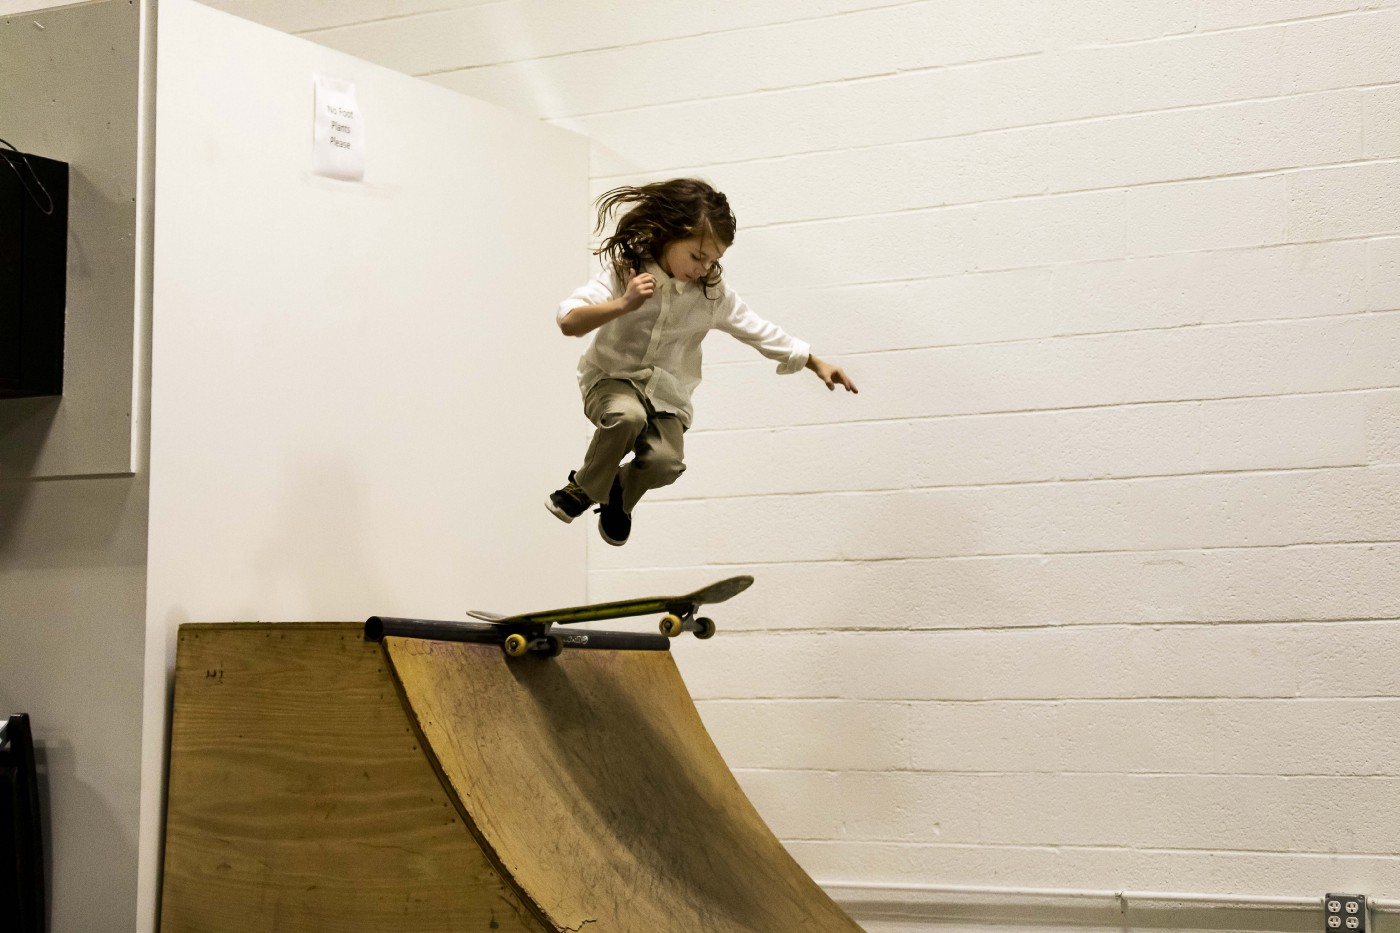 A photo of a young girl skateboarding on a ramp.